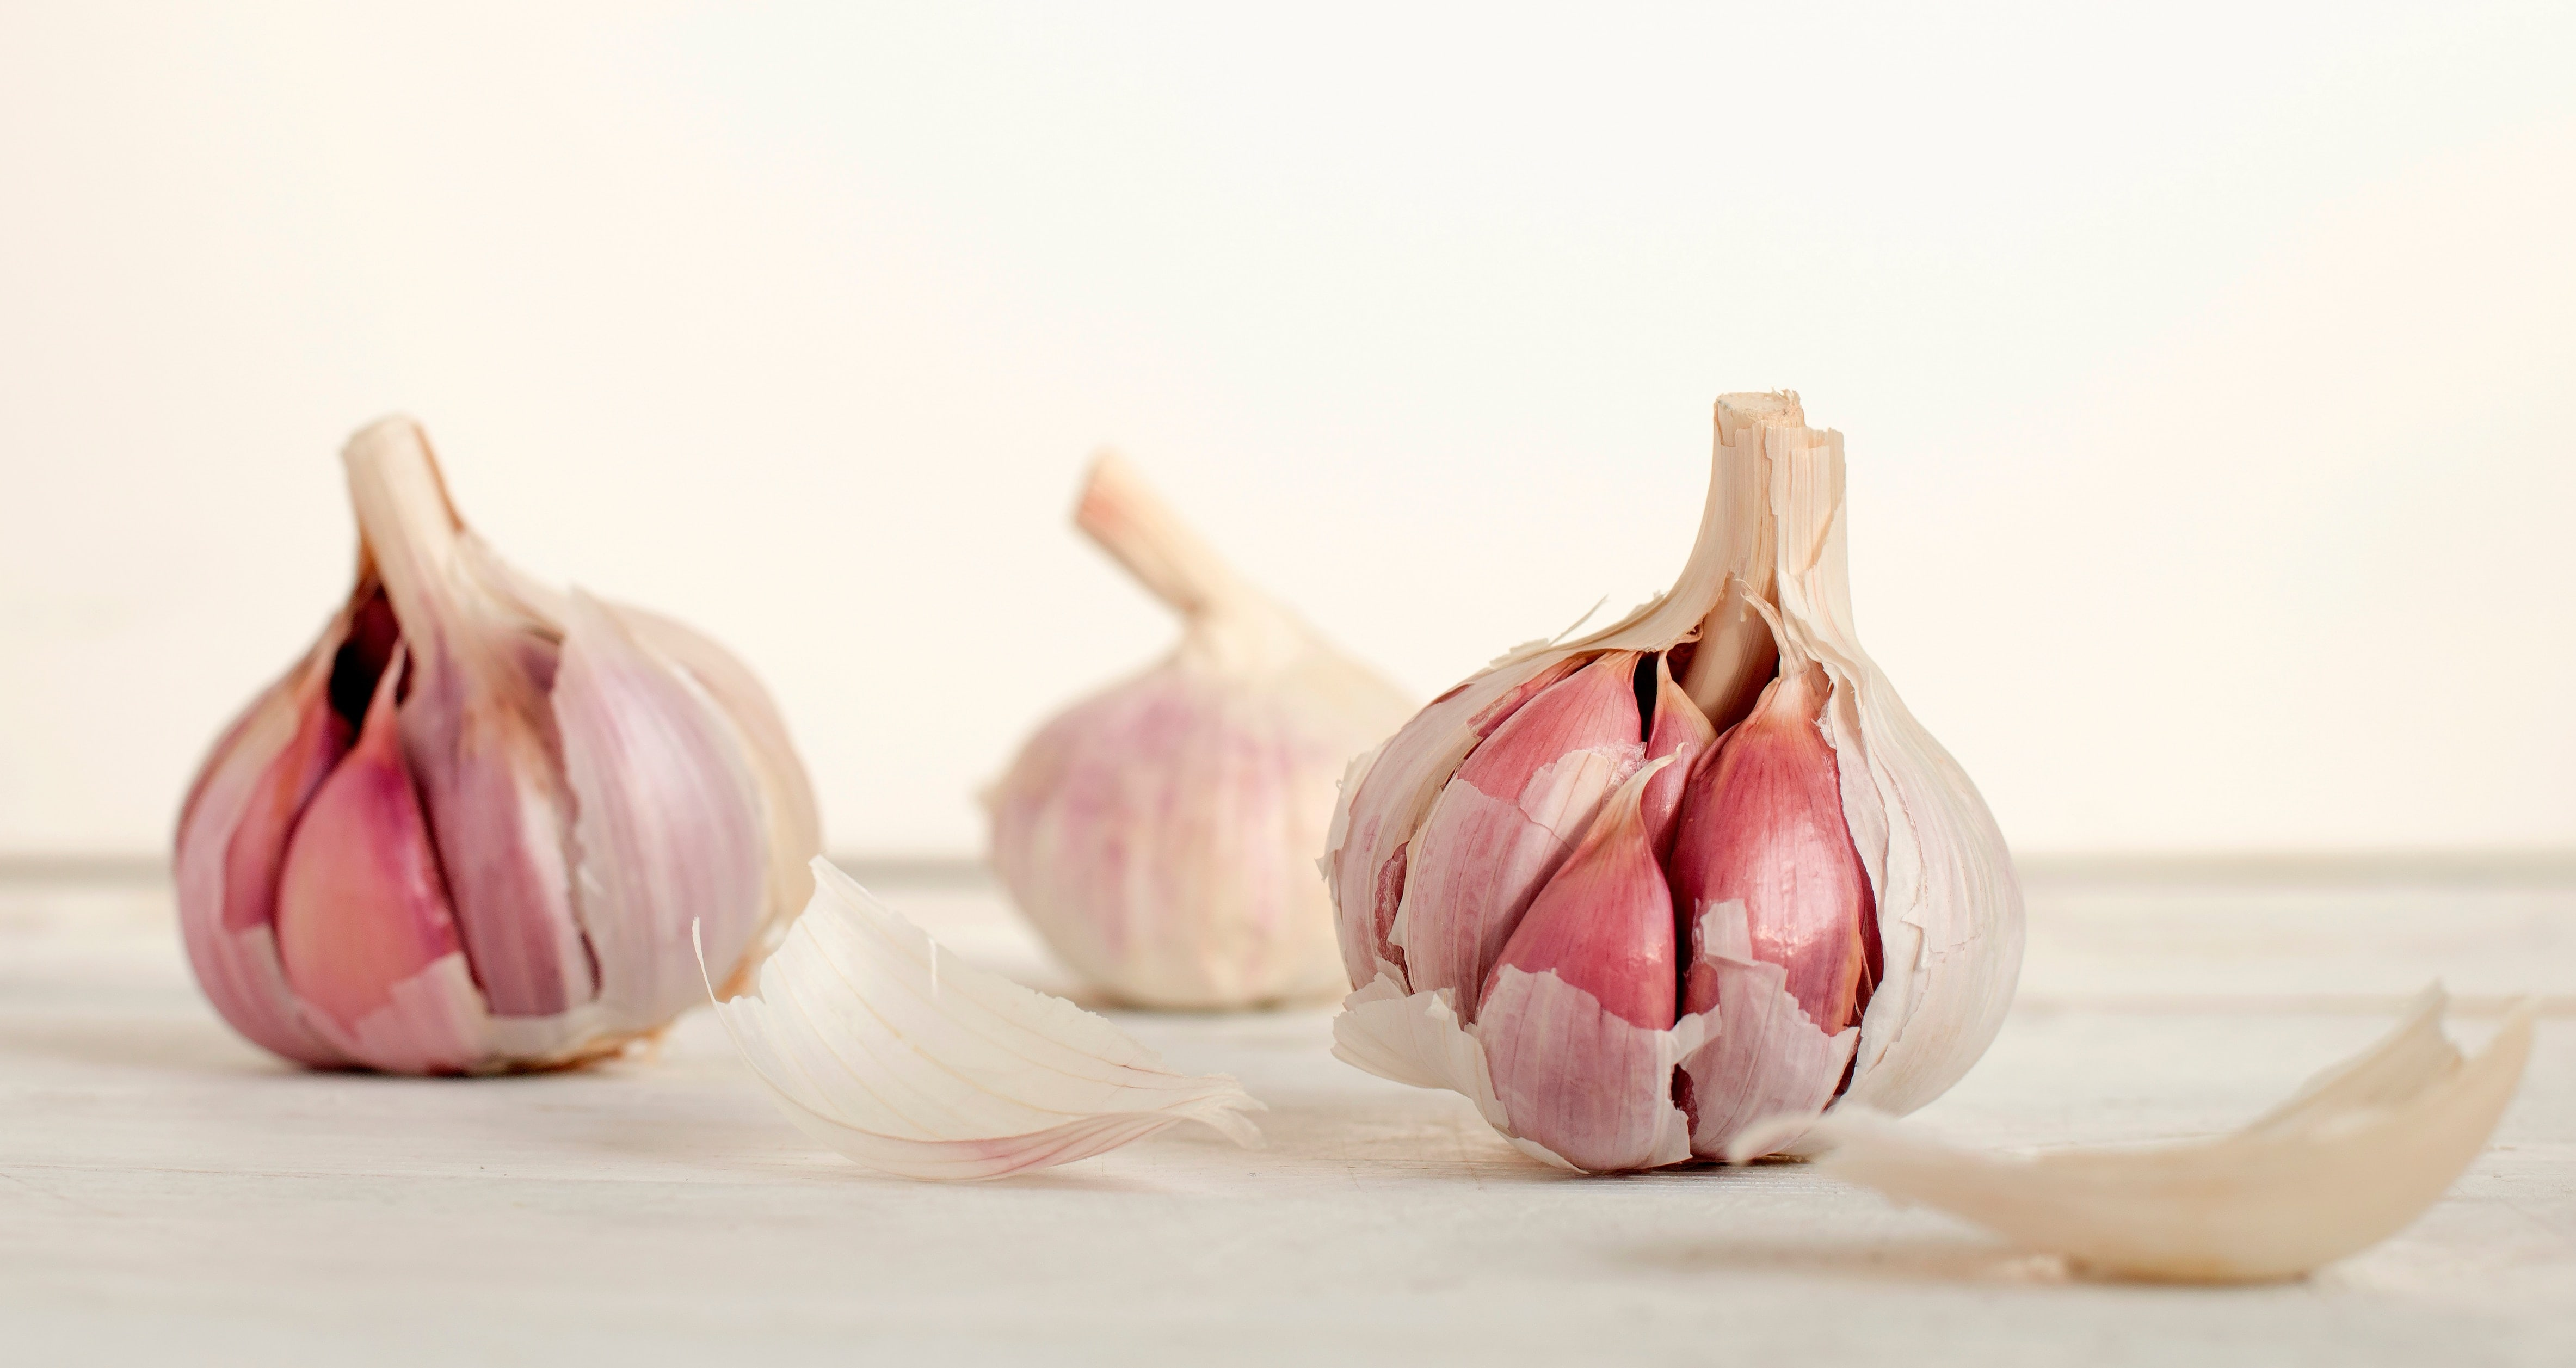 Garlic is your friend.